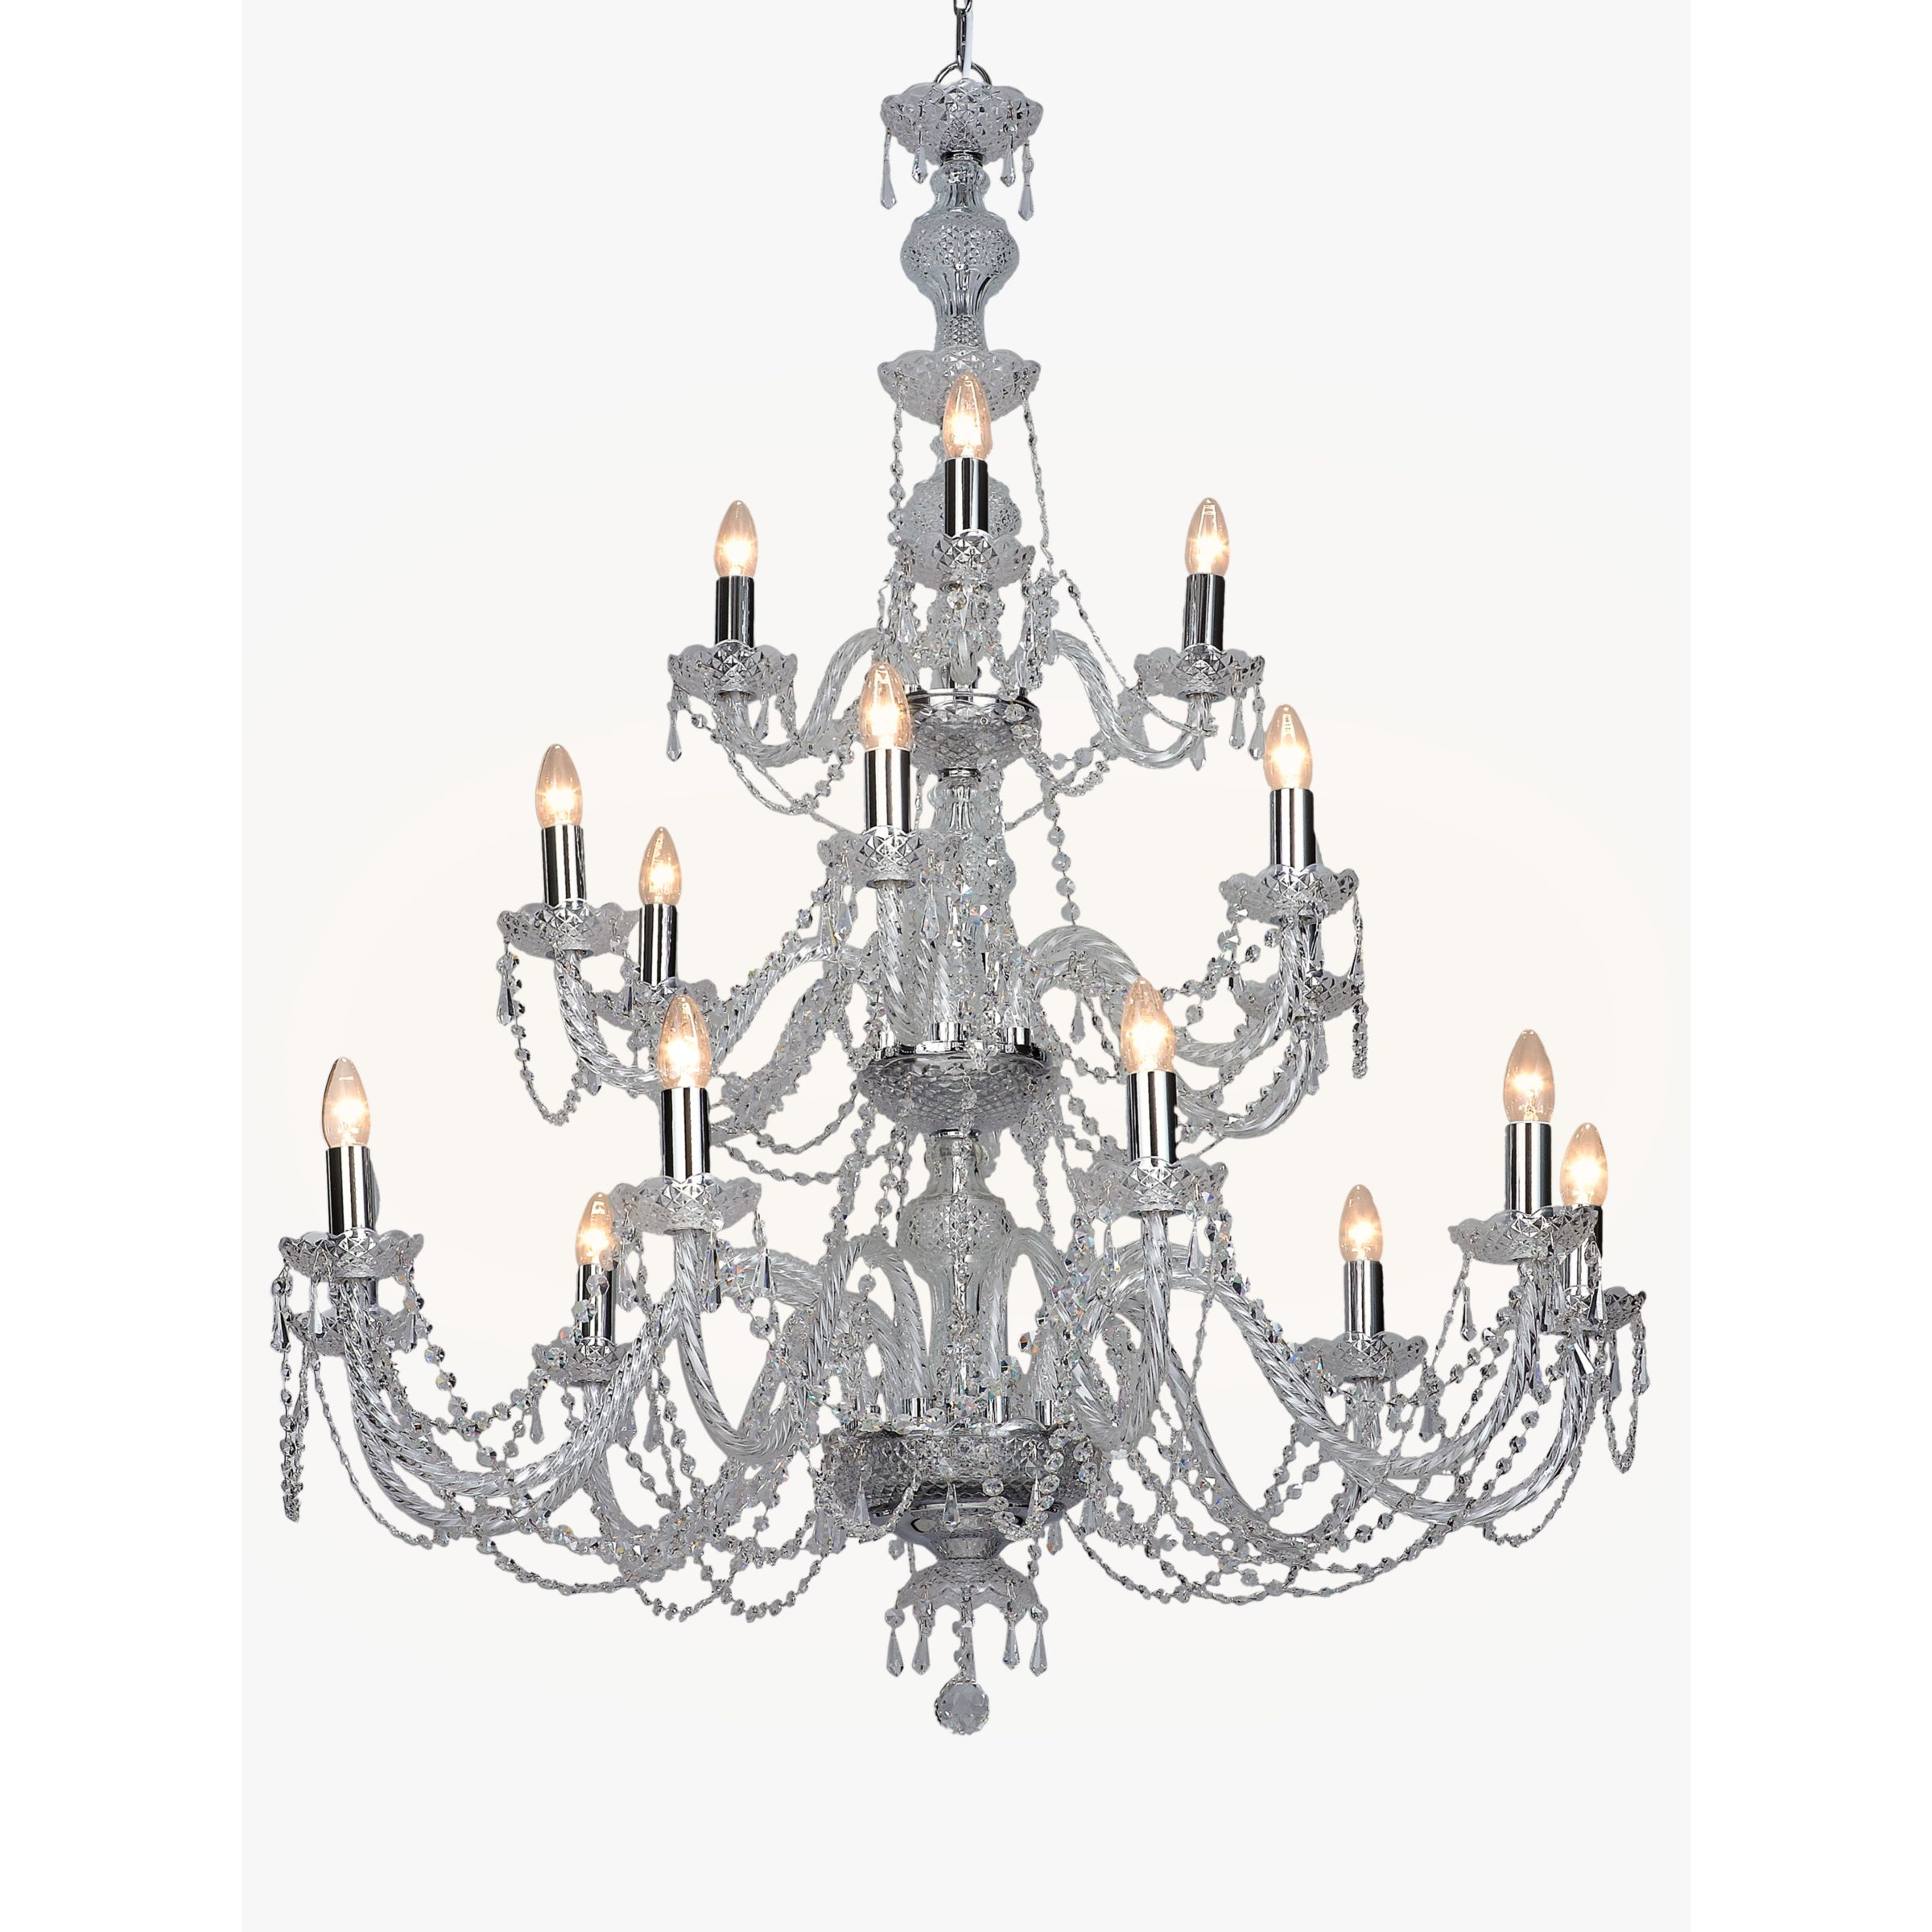 Impex Impex Modra Crystal Chandelier Ceiling Light, Clear/Chrome